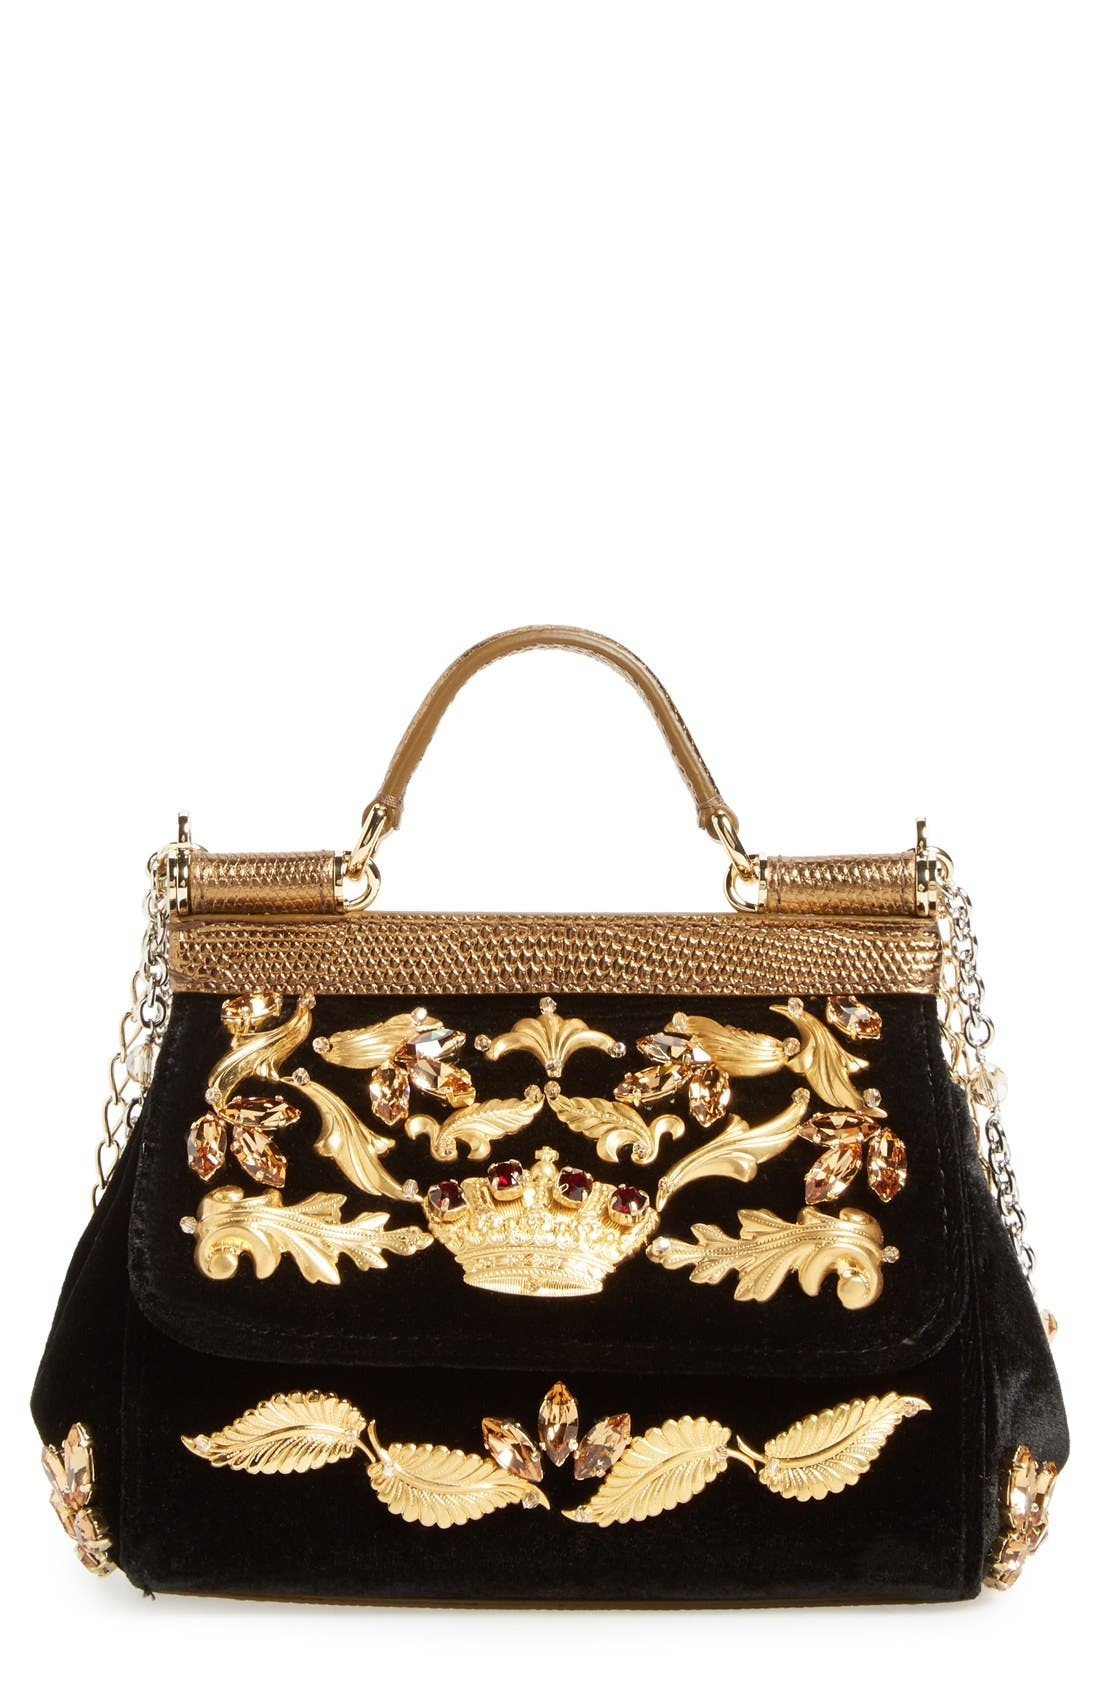 Main Image - Dolce&Gabbana 'Mini Sicily' Velvet Shoulder Bag